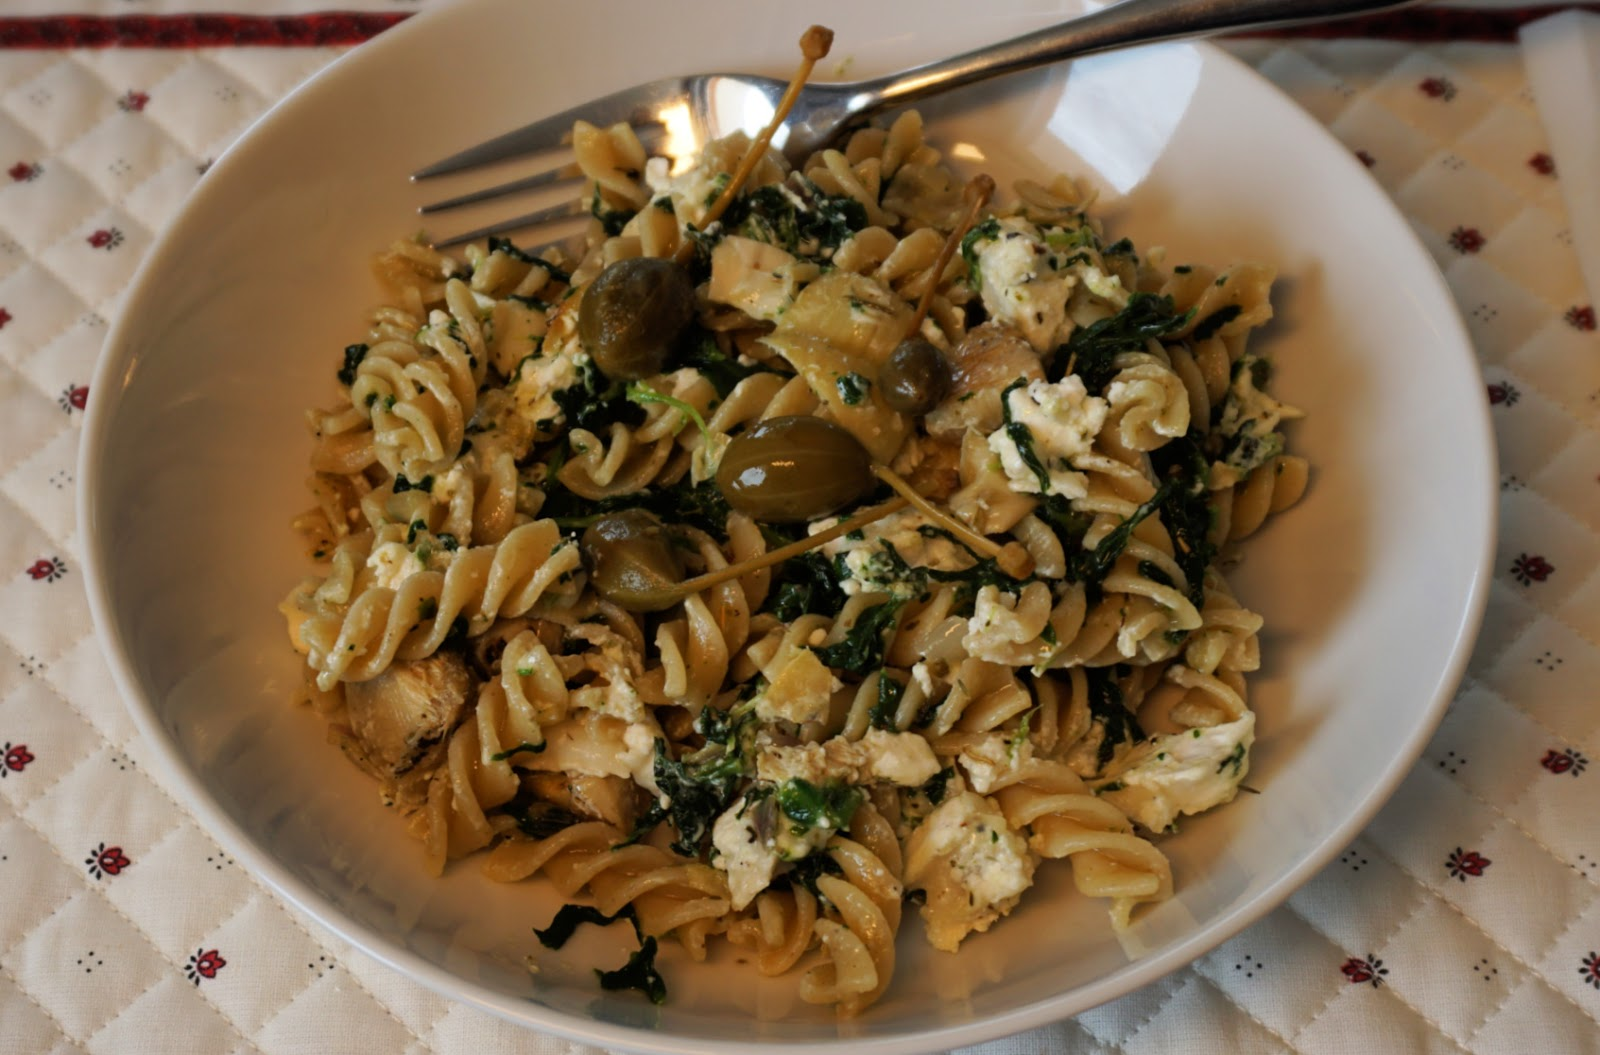 Pasta with goat cheese, spinach, artichokes and capers